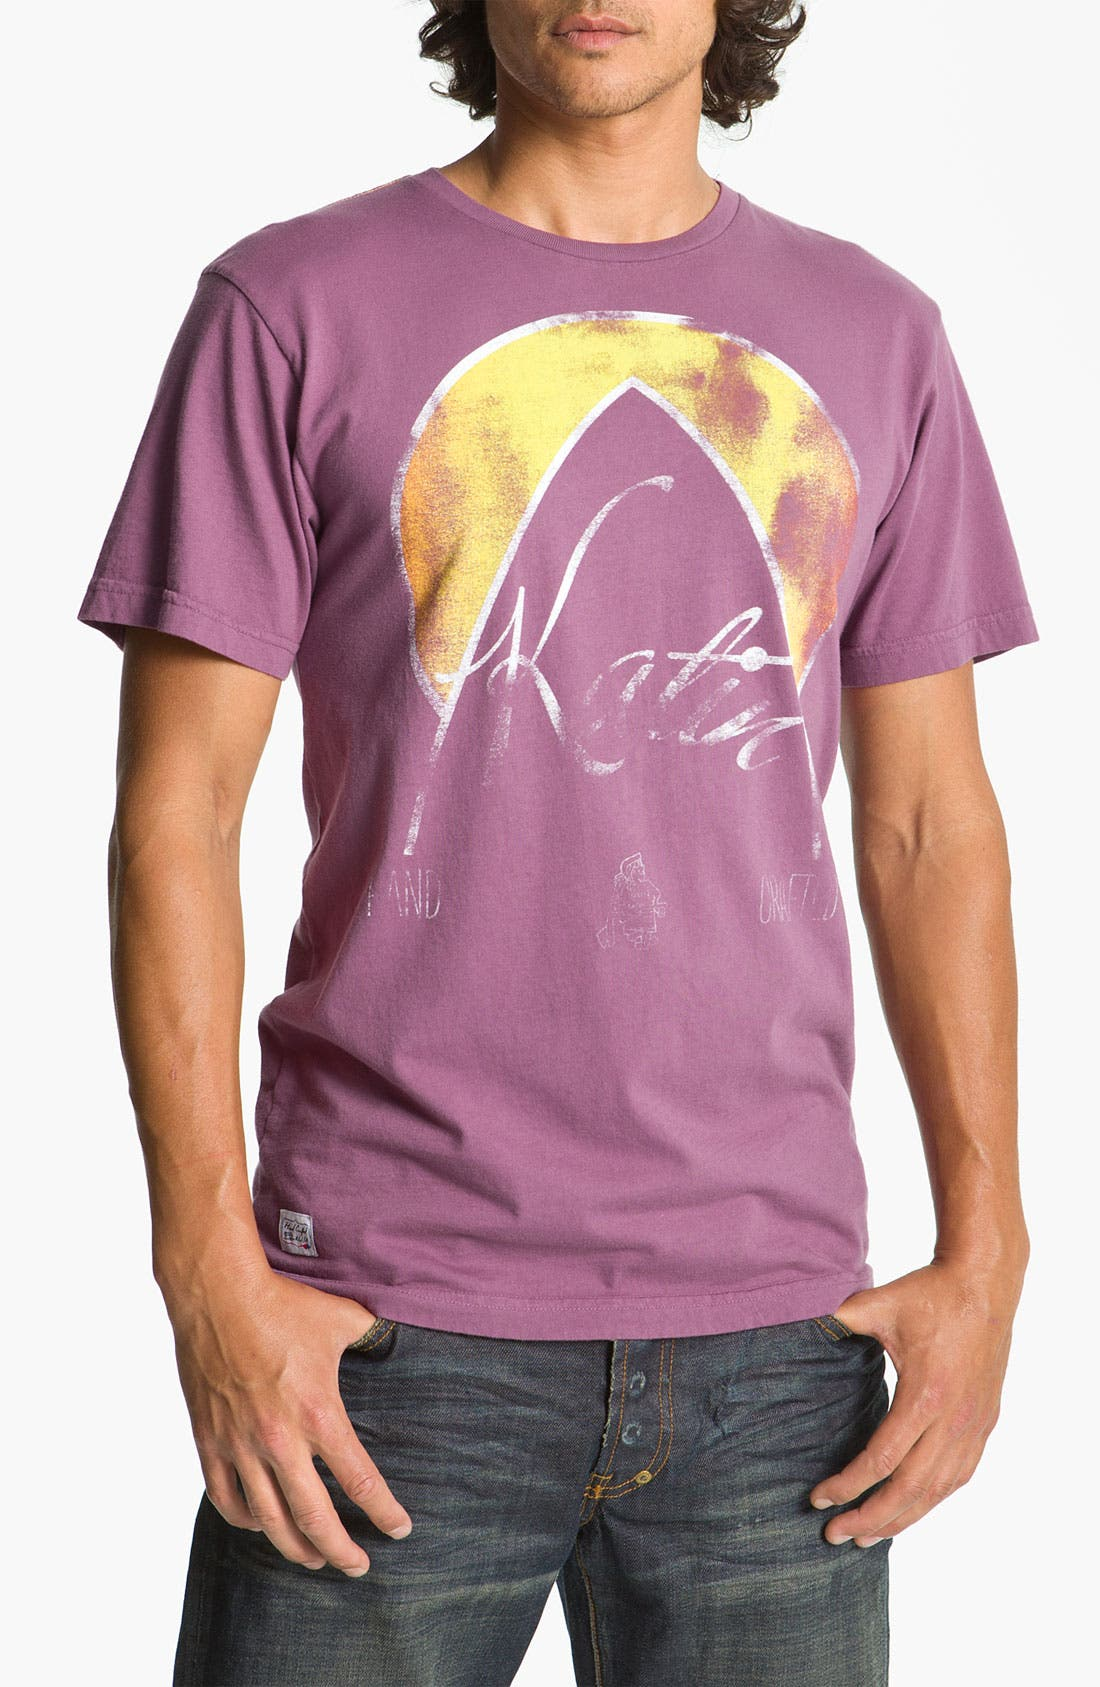 Main Image - Katin 'Nose' Graphic T-Shirt